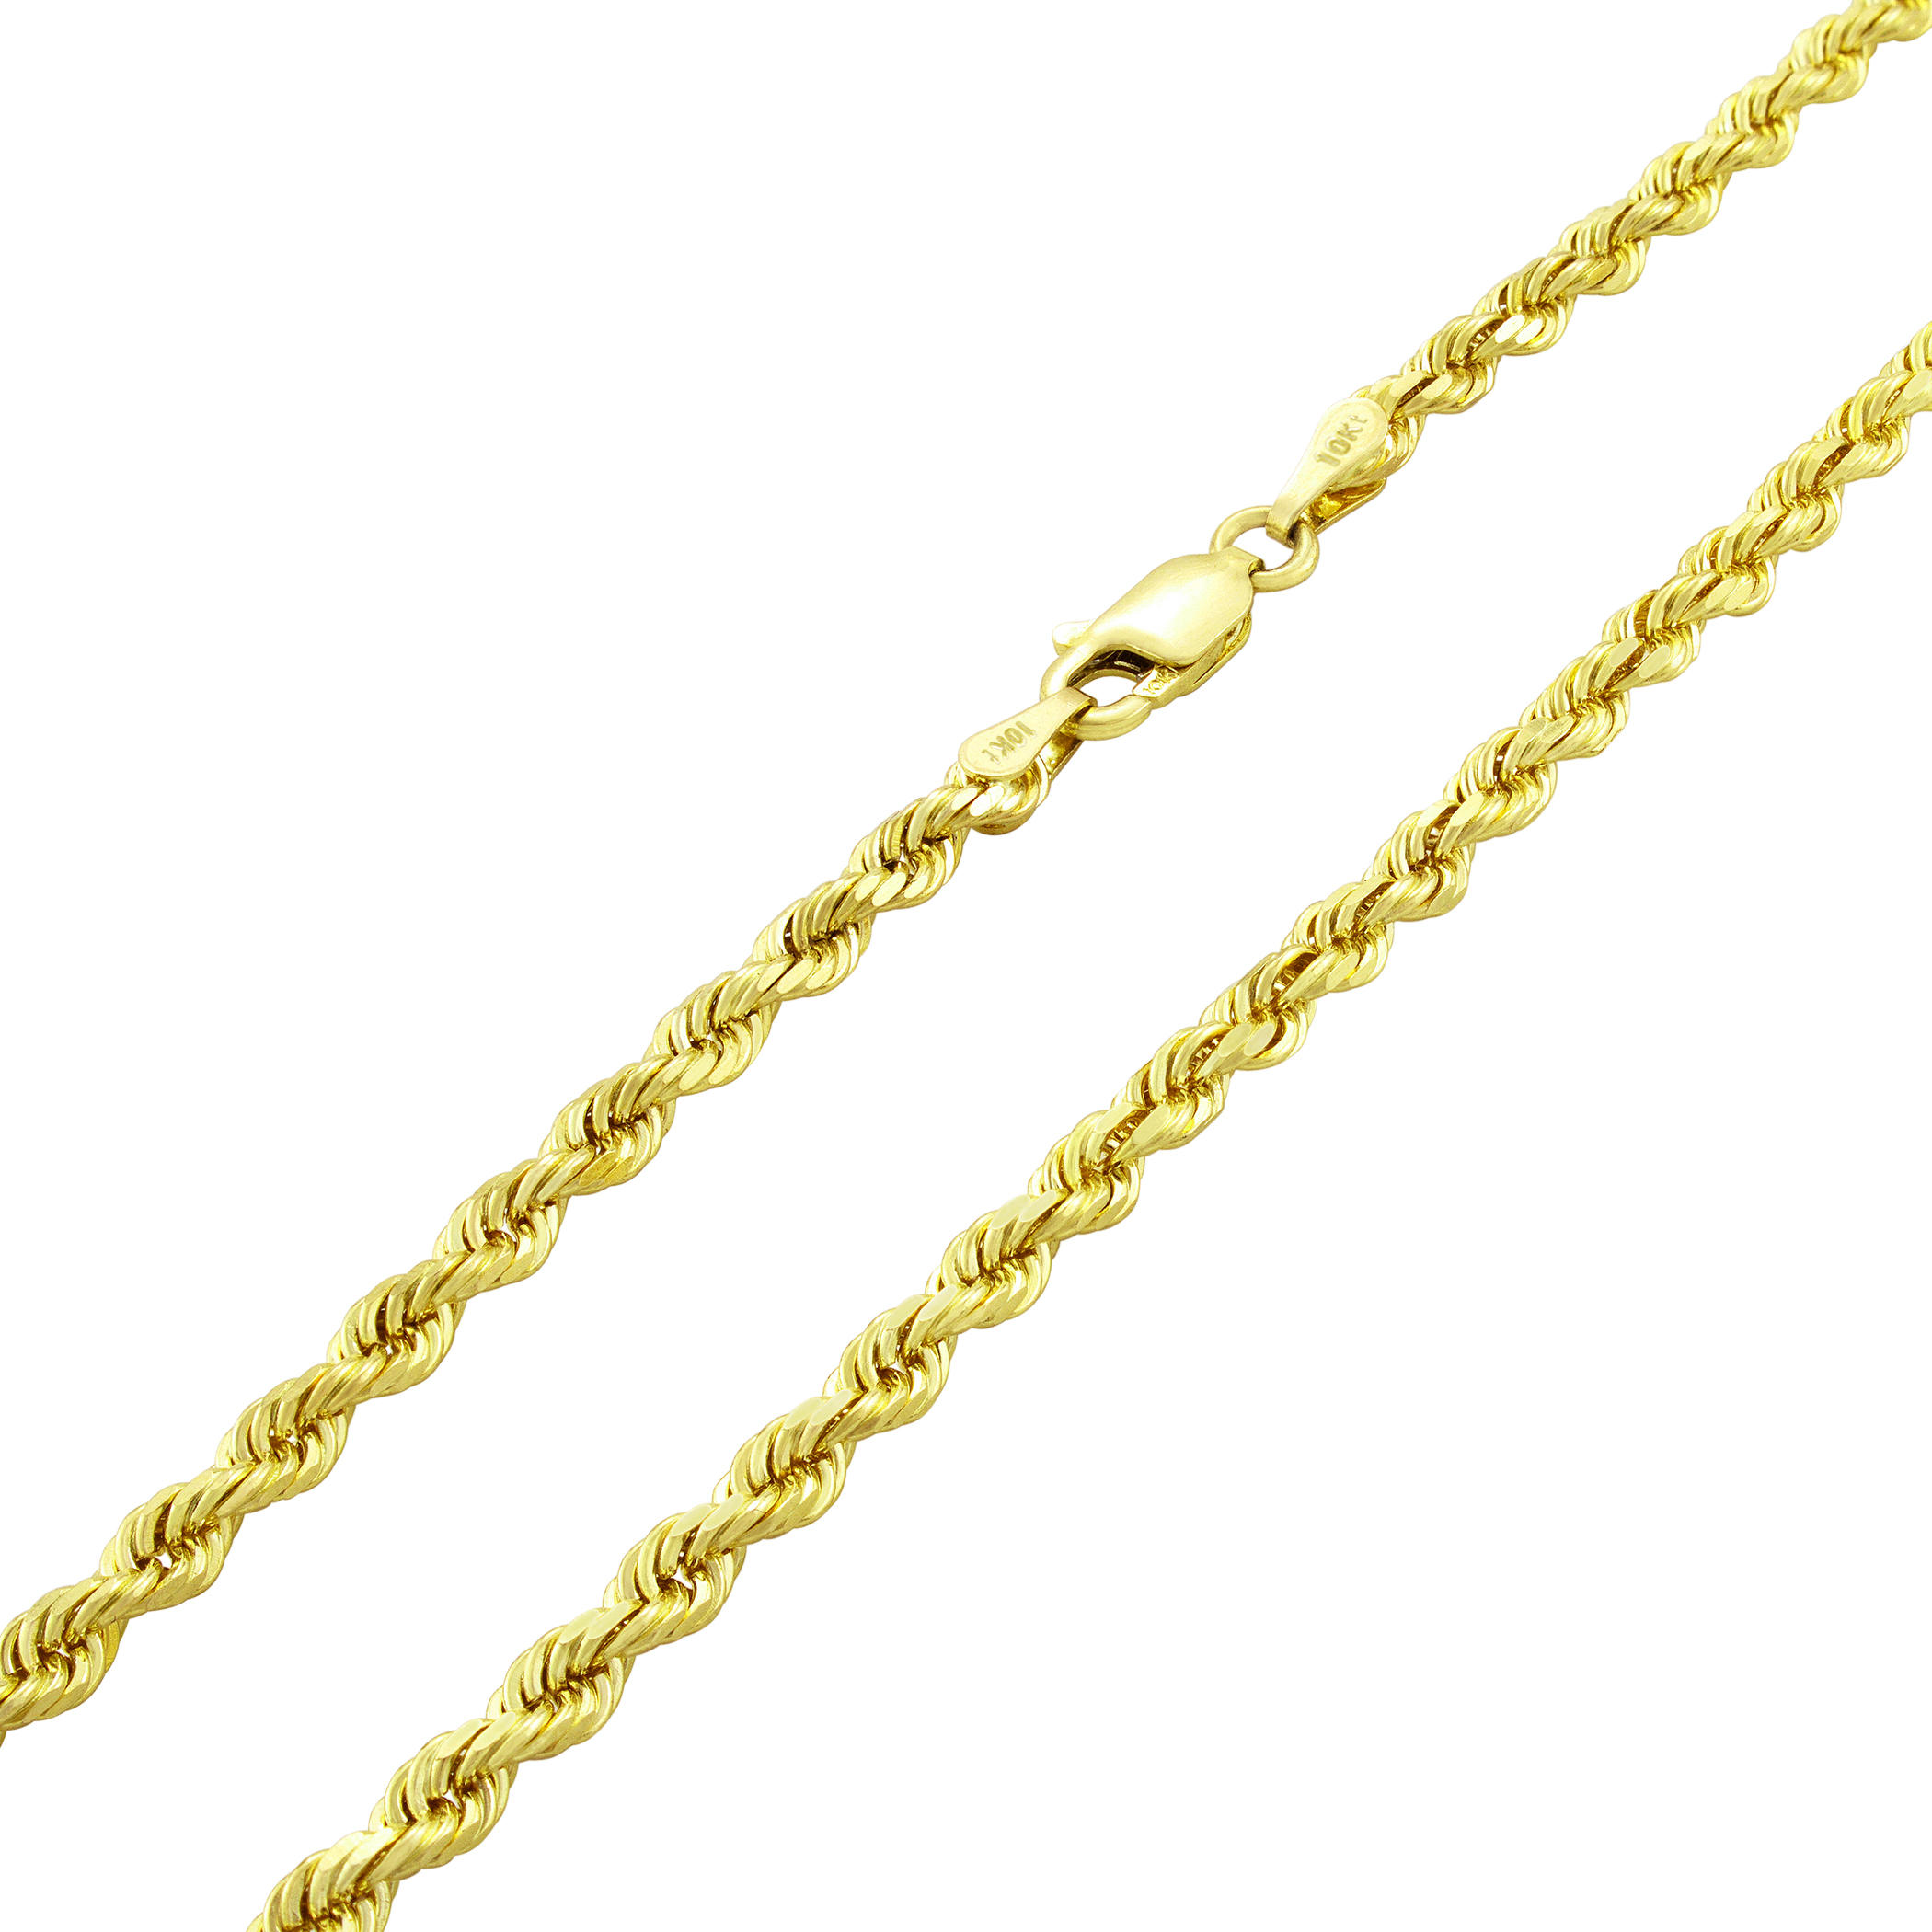 10K-Yellow-Gold-Real-3mm-Diamond-Cut-Rope-Chain-Bracelet-Lobster-Clasp-7-034-8-034-9-034 thumbnail 17